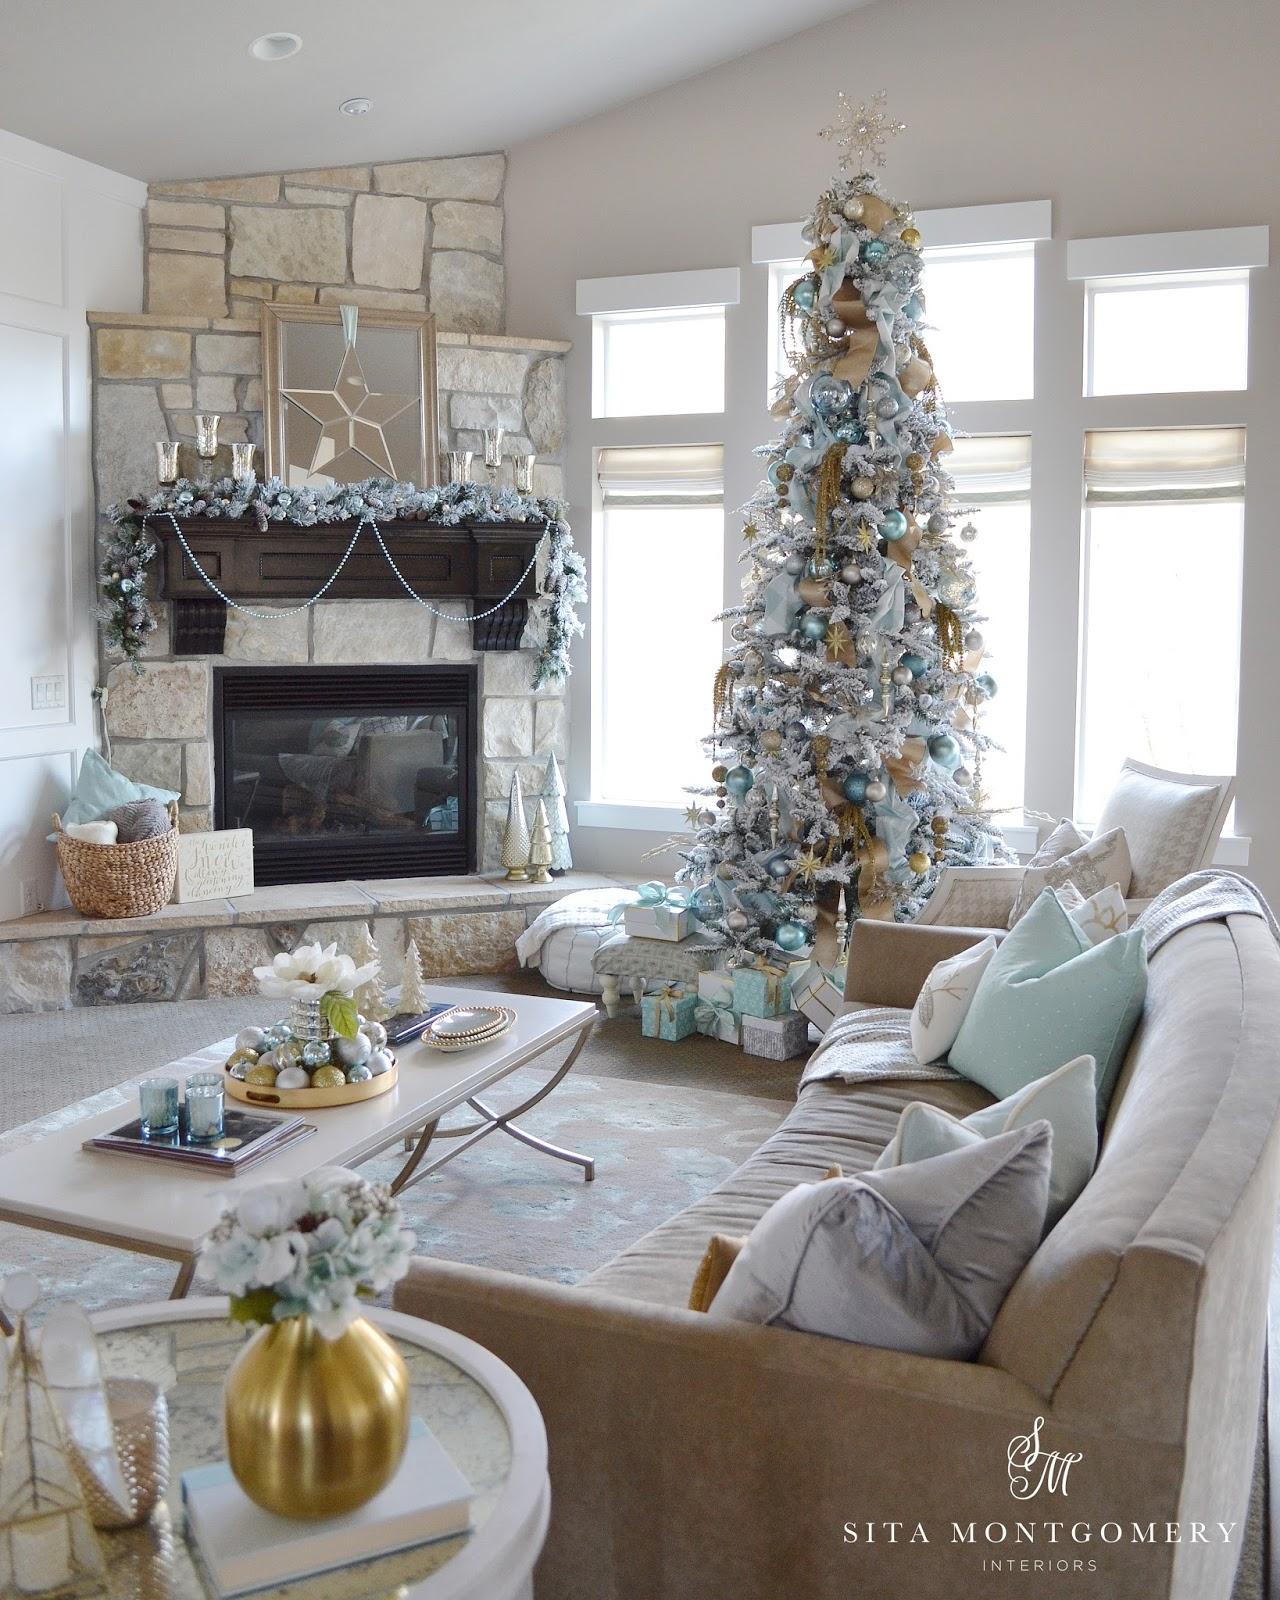 A holiday with heart blog hop sita montgomery interiors - Pictures of decorated living rooms ...